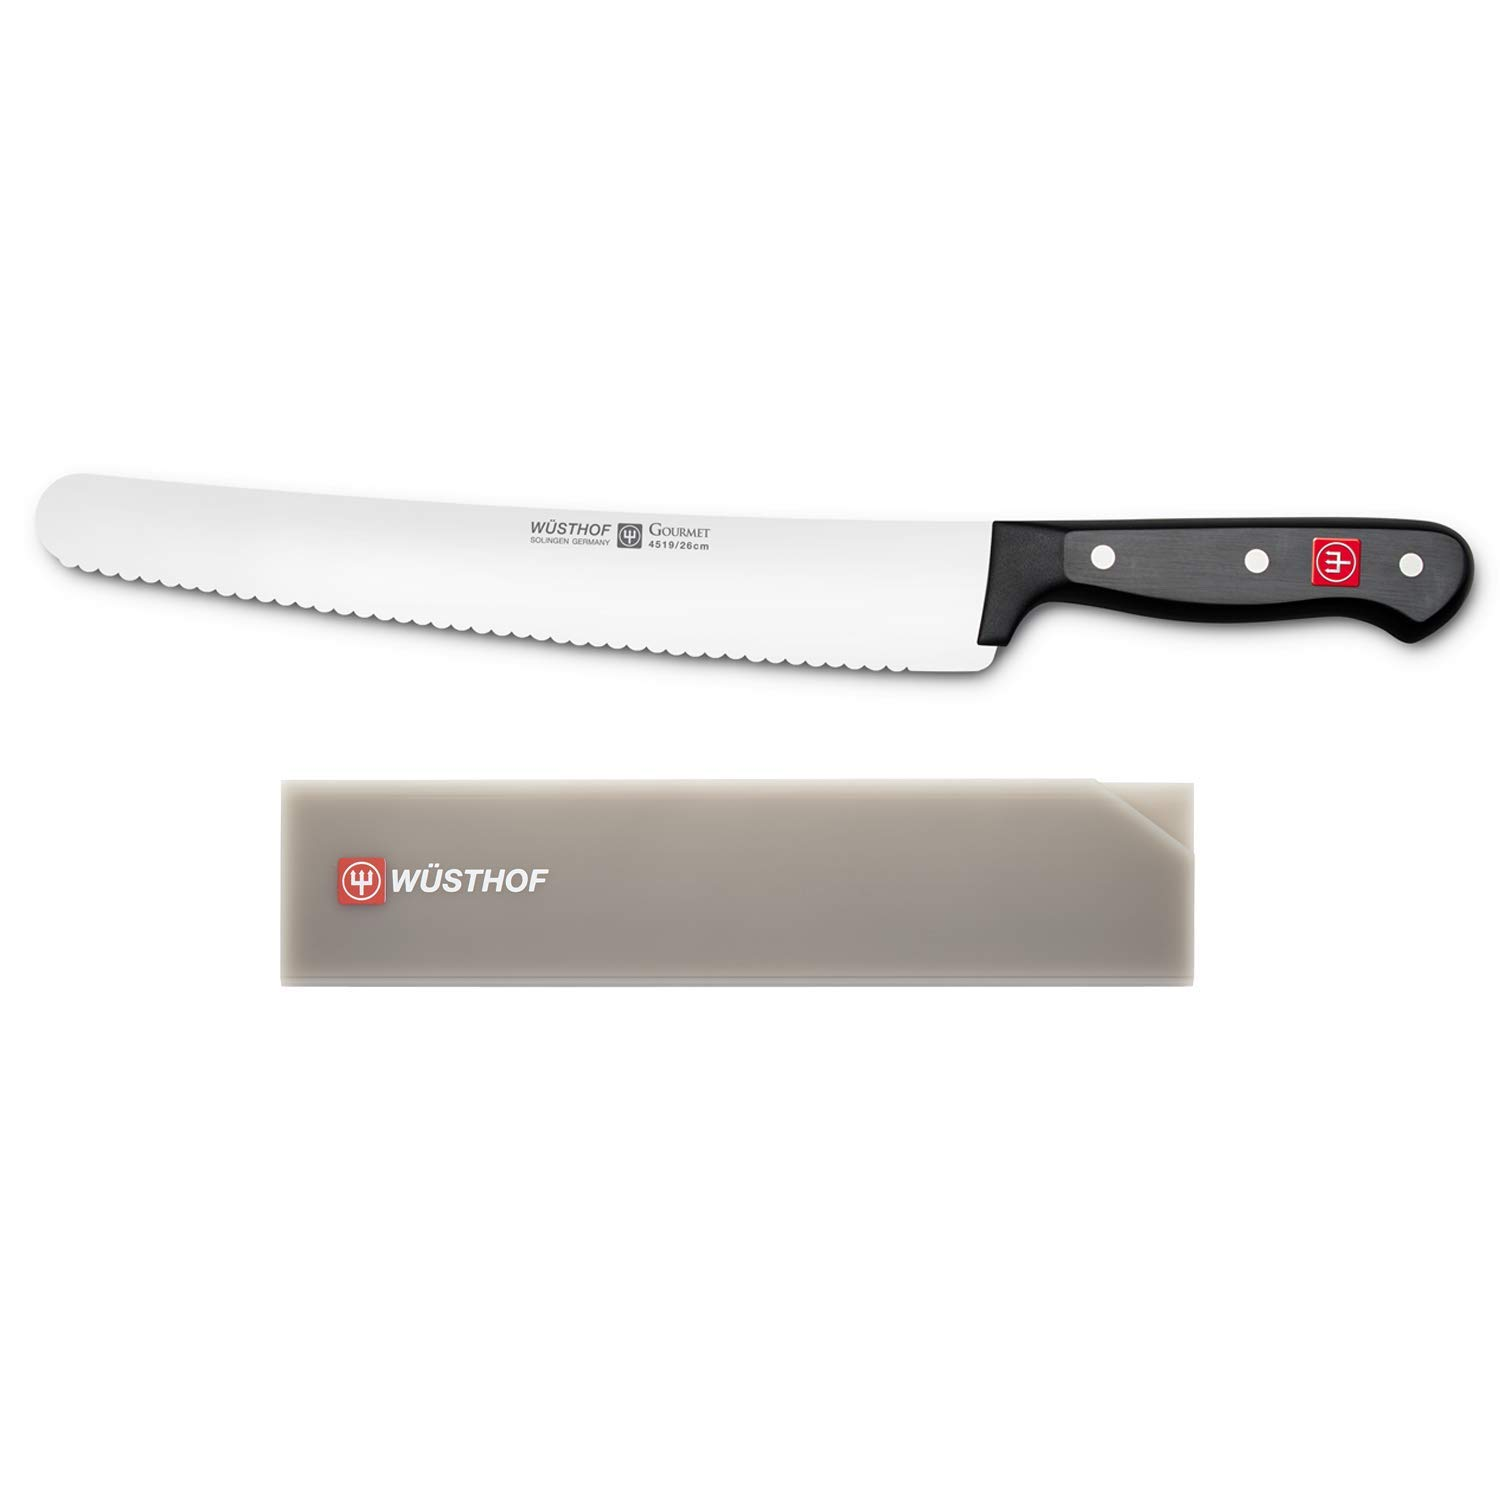 Wusthof Gourmet 10'' Super Slicer with Blade Guard Fits Up To 10'' Cook Knife